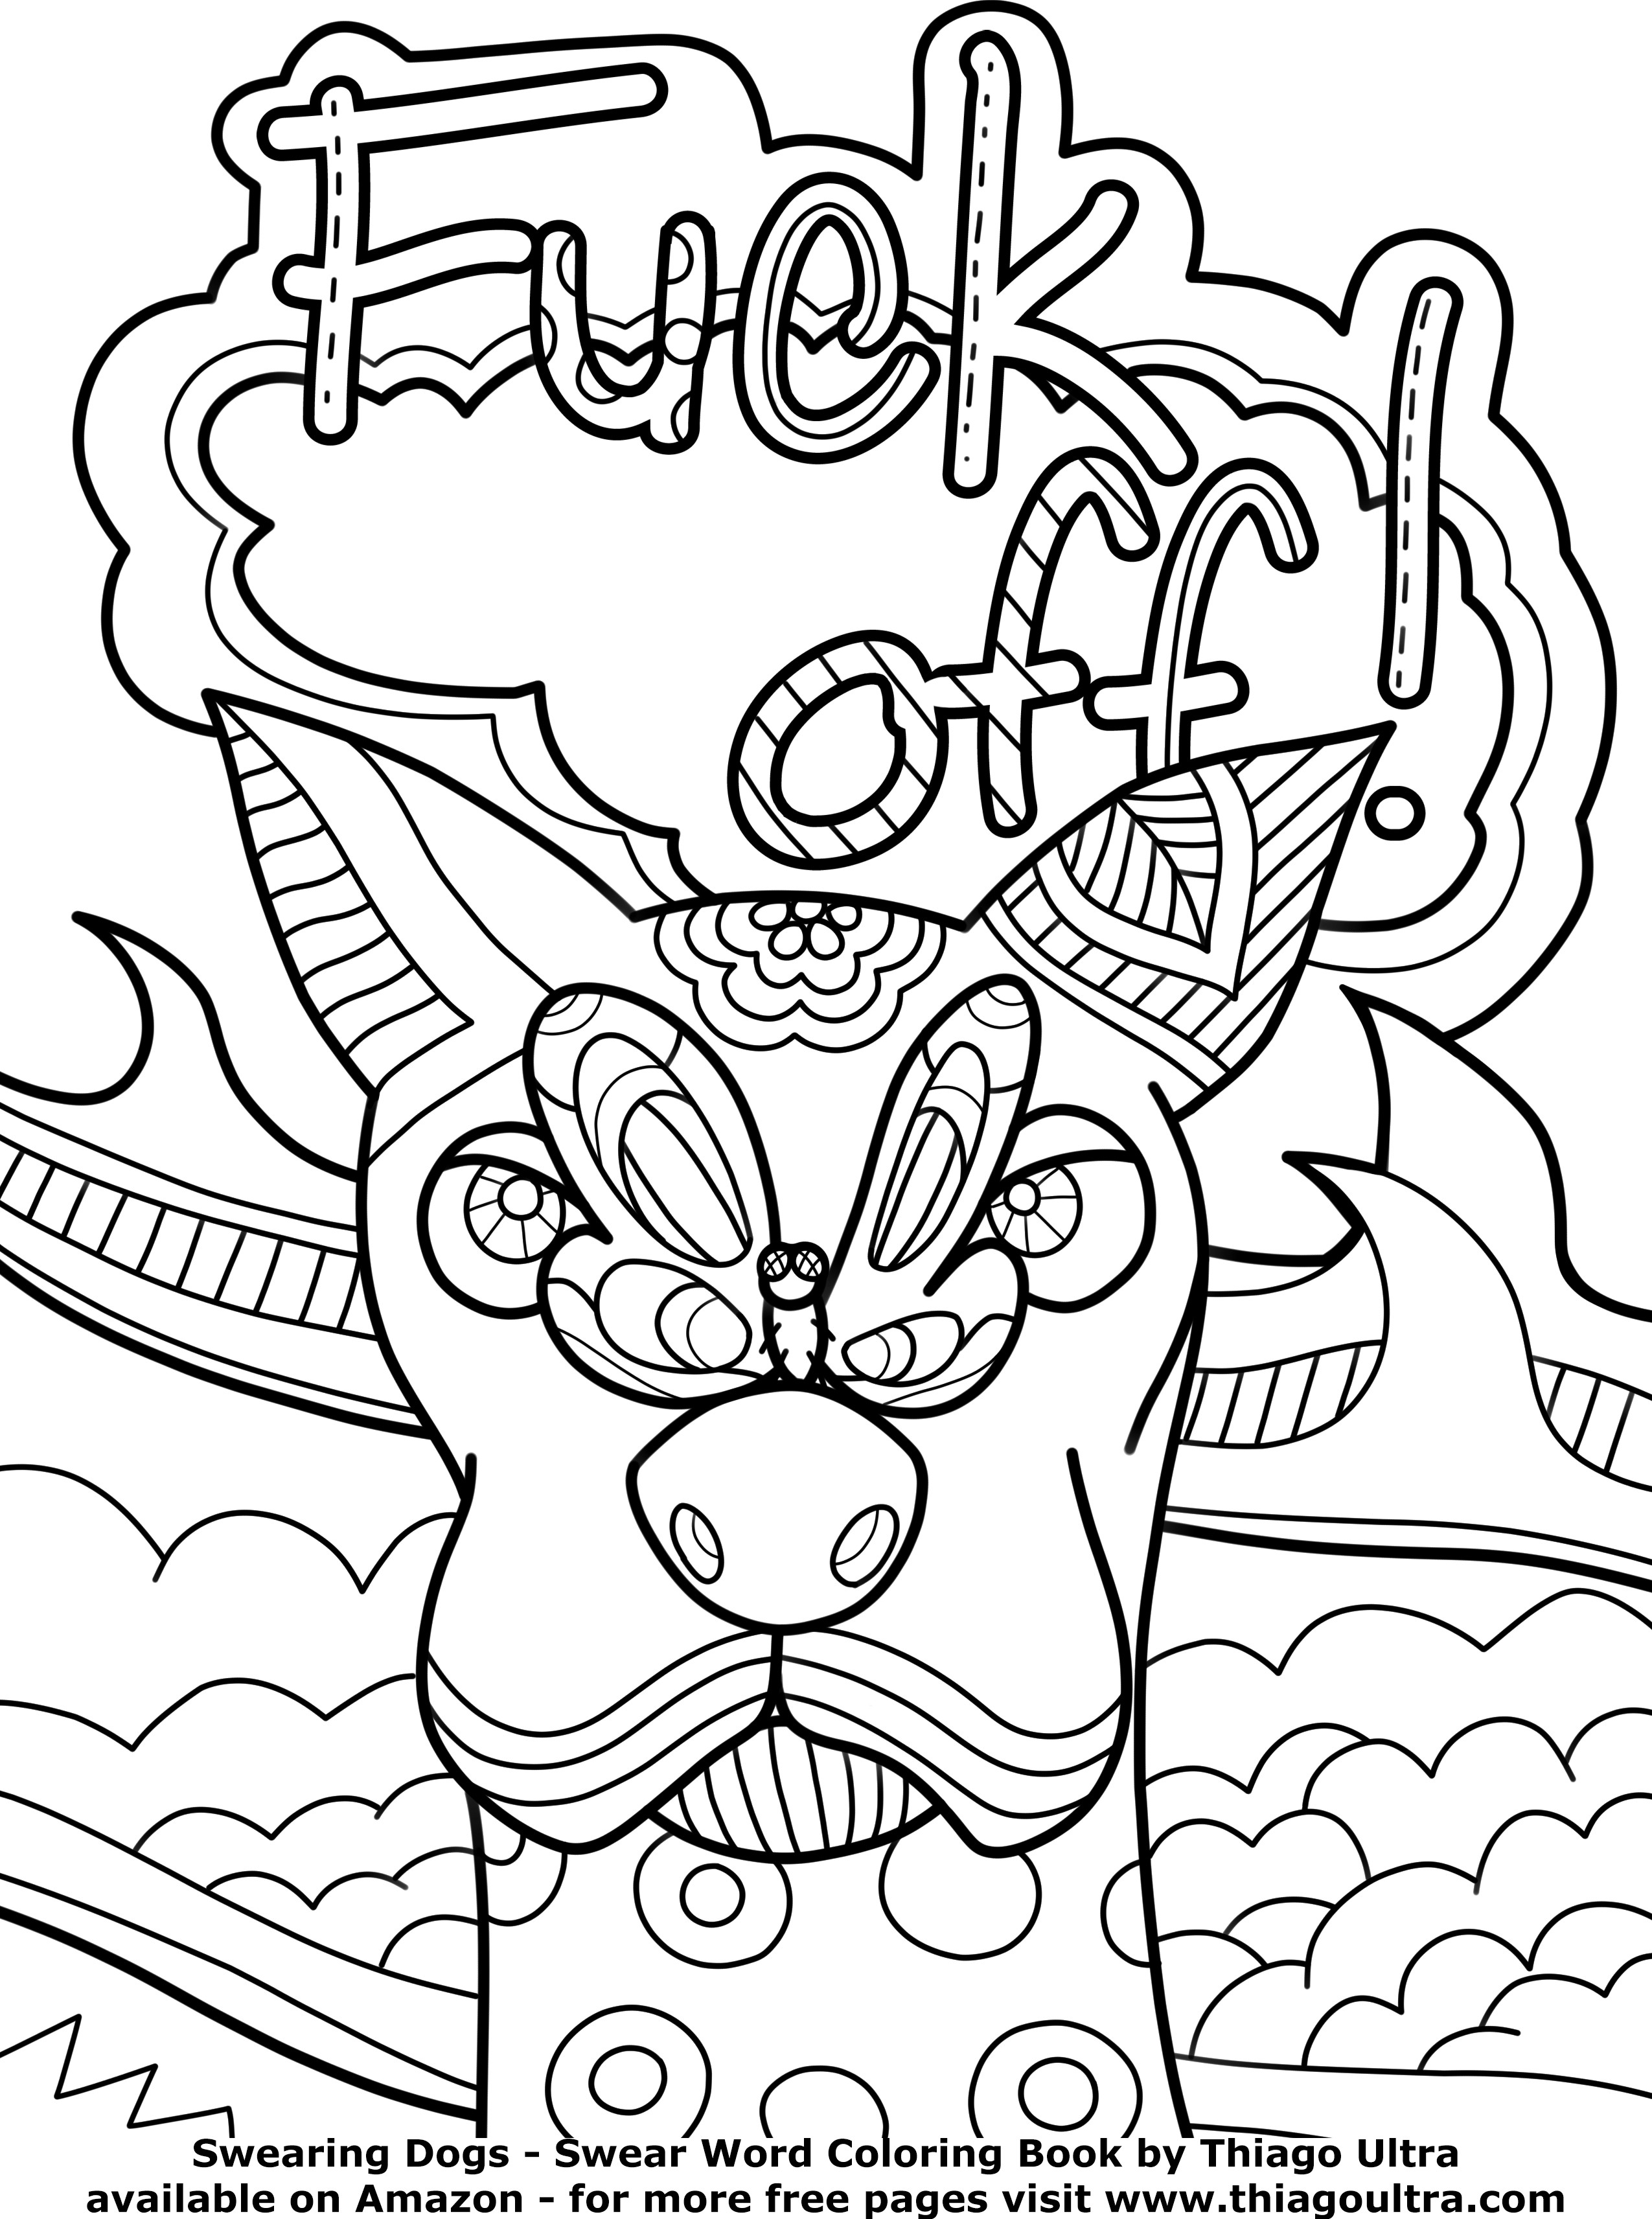 Best ideas about Free Swear Word Coloring Pages For Adults . Save or Pin Swear Word Coloring Pages Free Free Printable Adult Now.